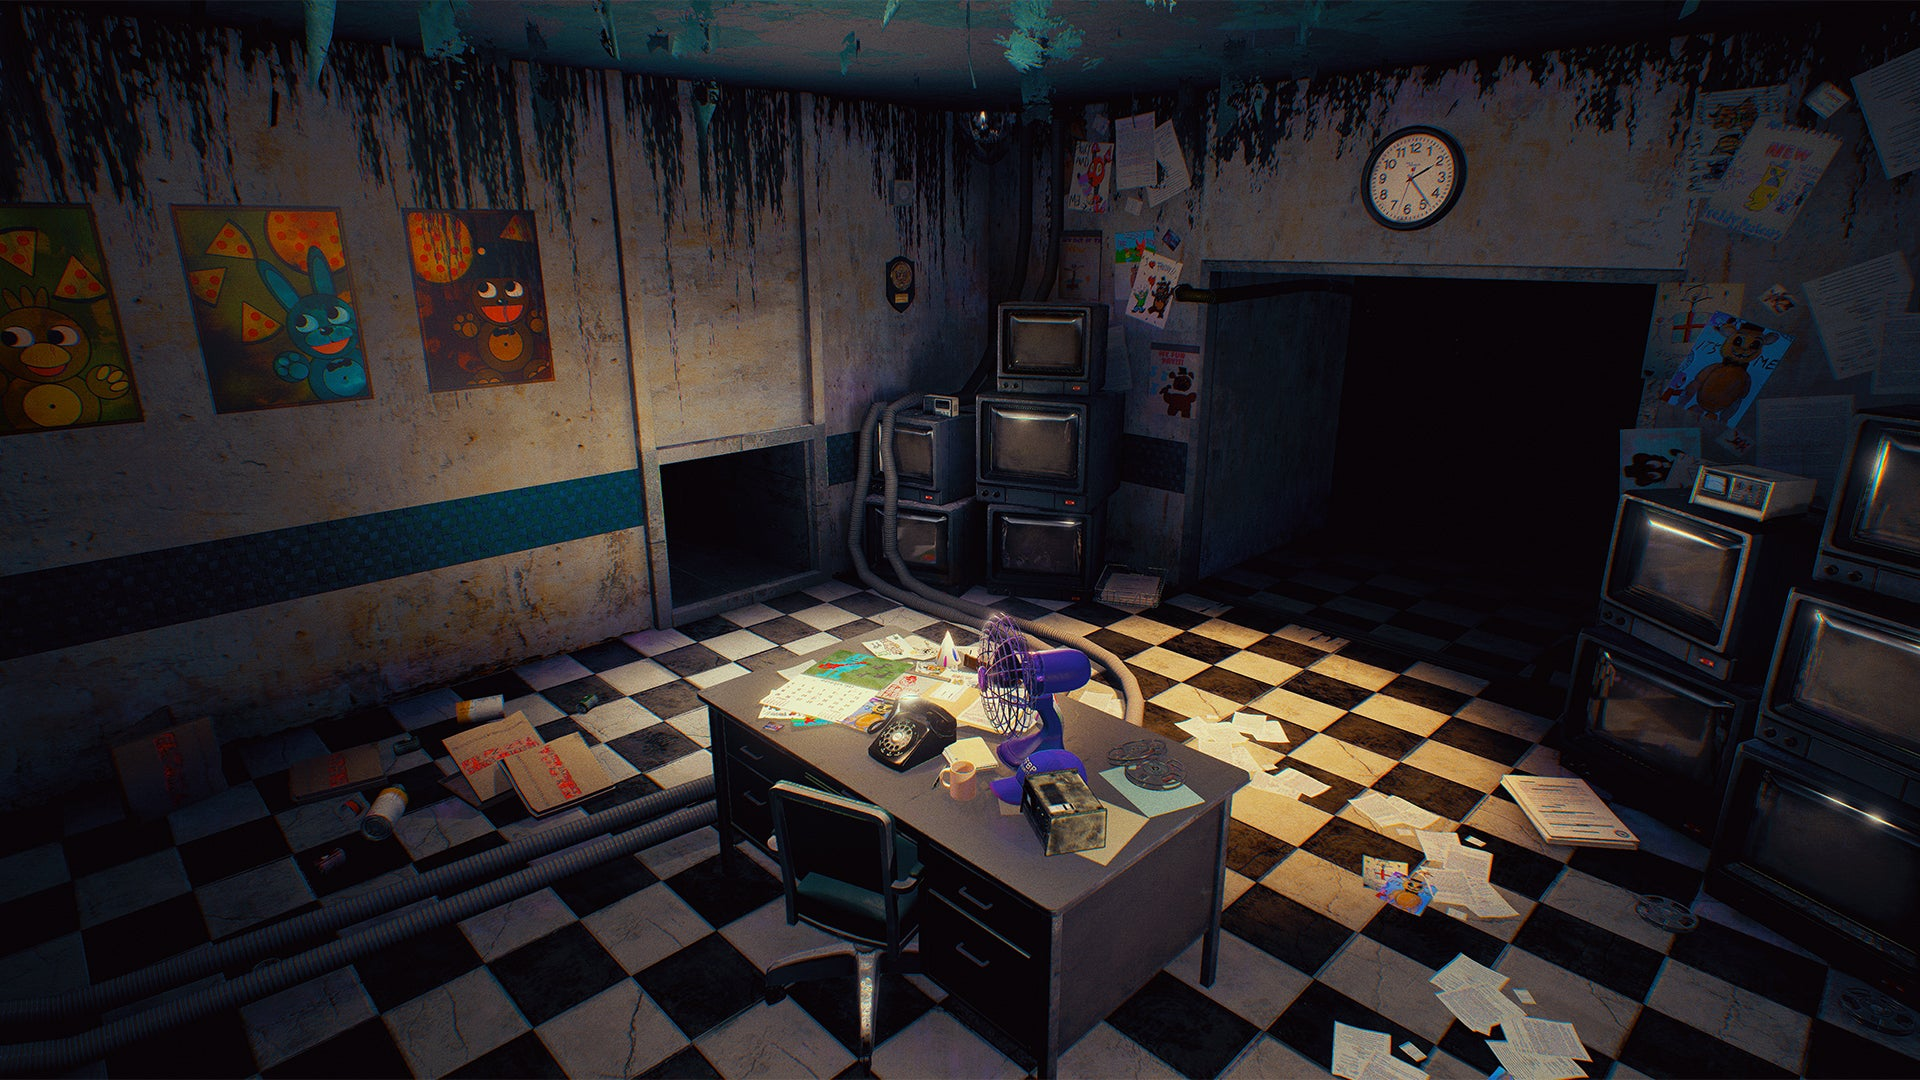 Unreal 4 Makes Five Nights at Freddy's Actually Look Good